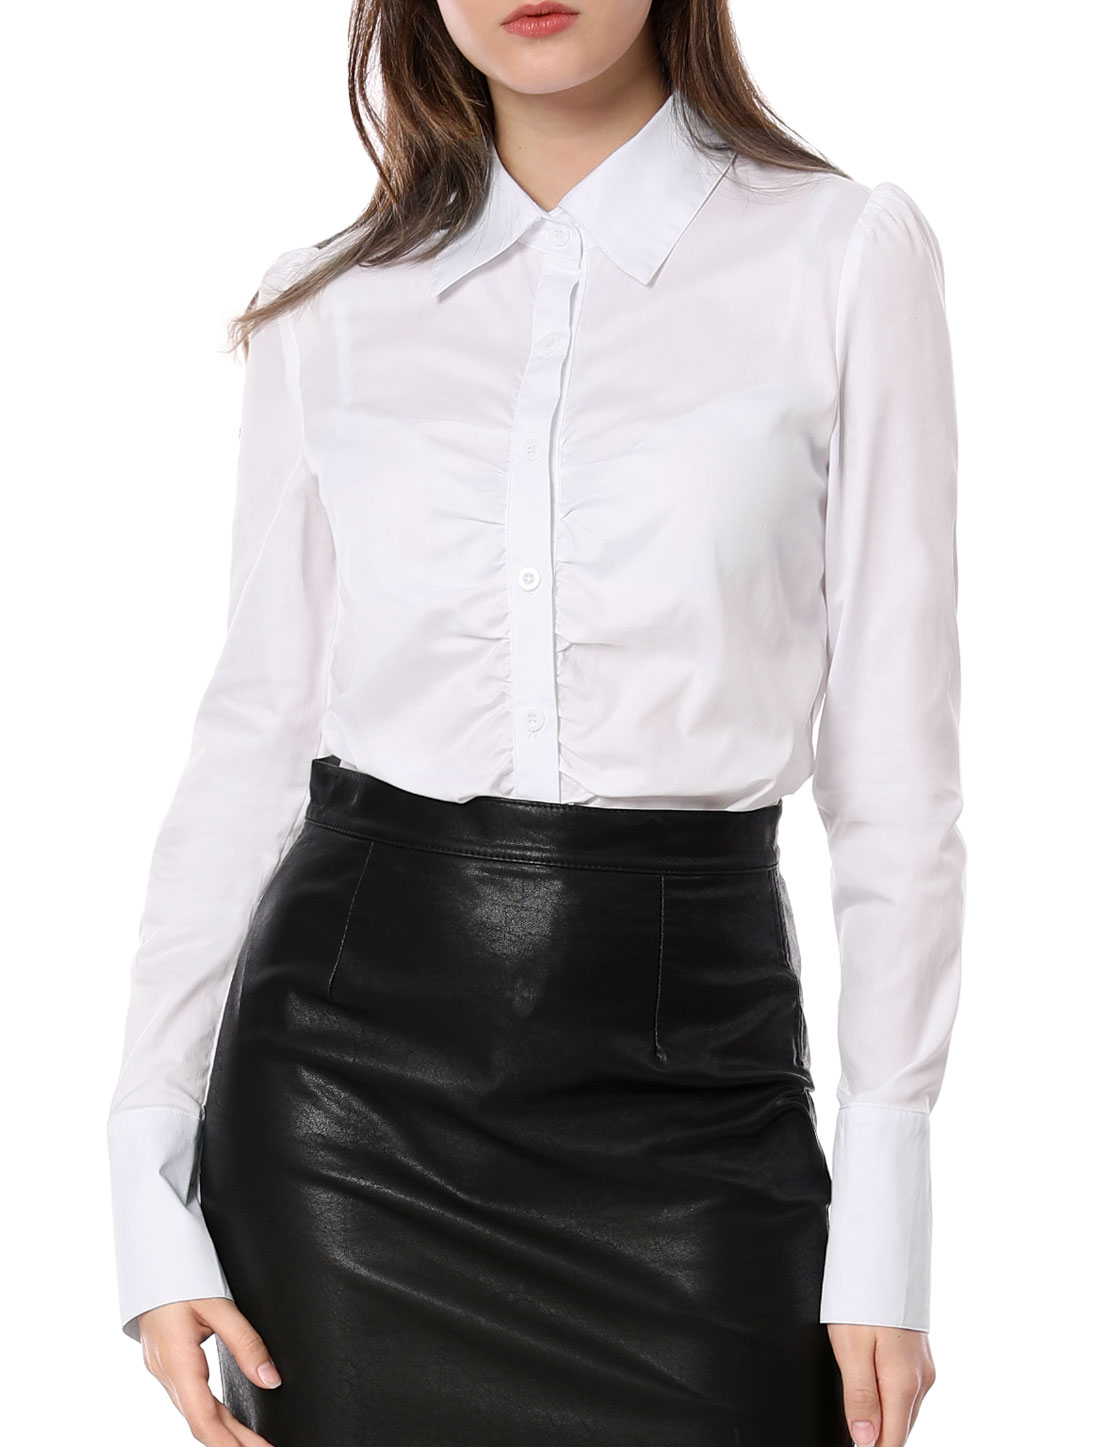 Women New Fashion Long Sleeve Bracelet Buttoned Cuff White Blouse XL